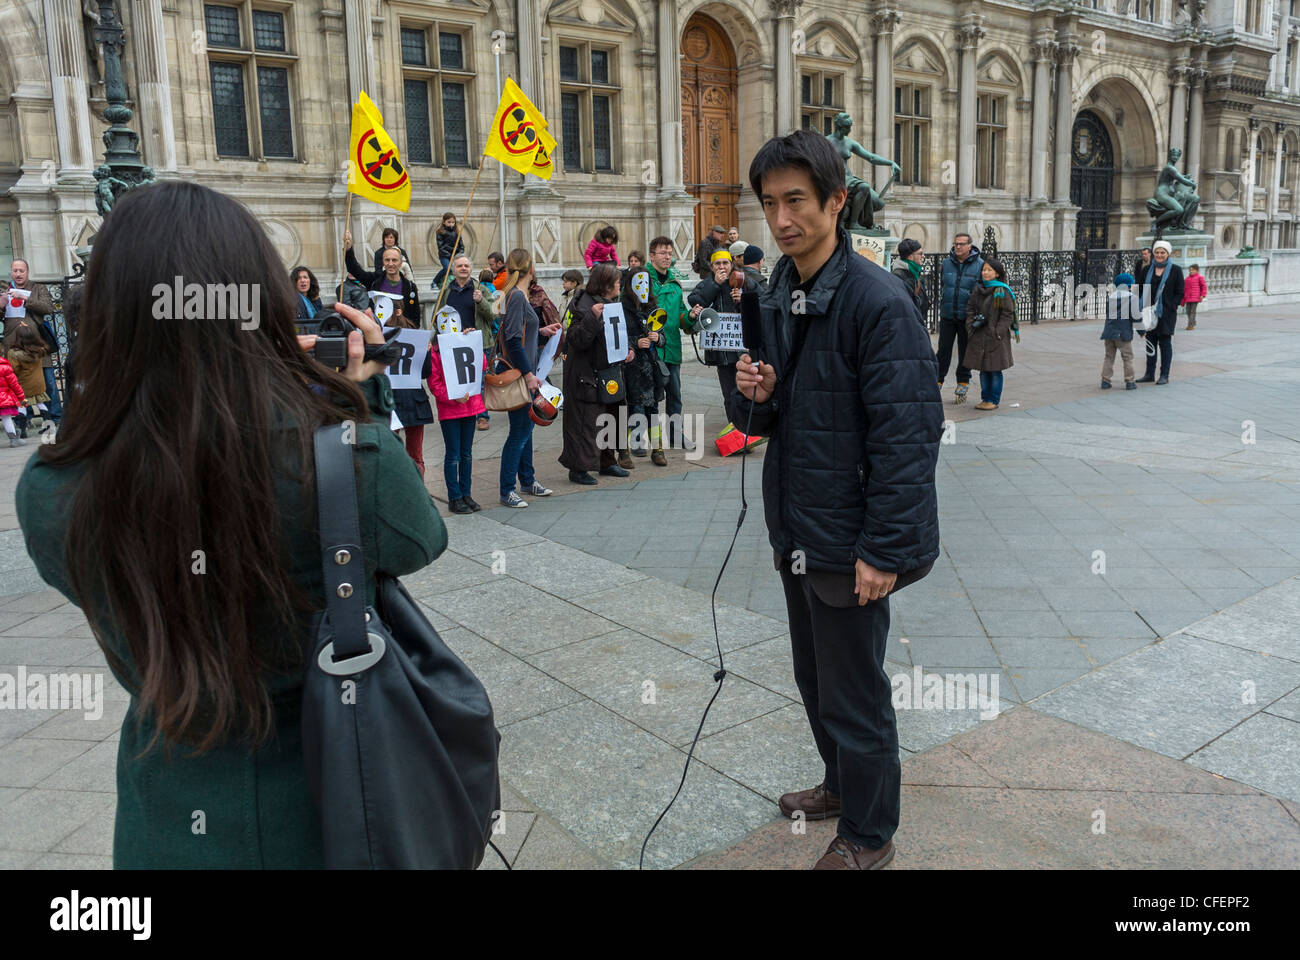 Paris, France, Japanese Journalists at Anti Nuclear Power Activists Demonstrating on Anniversary of Fukushima Disaster, - Stock Image